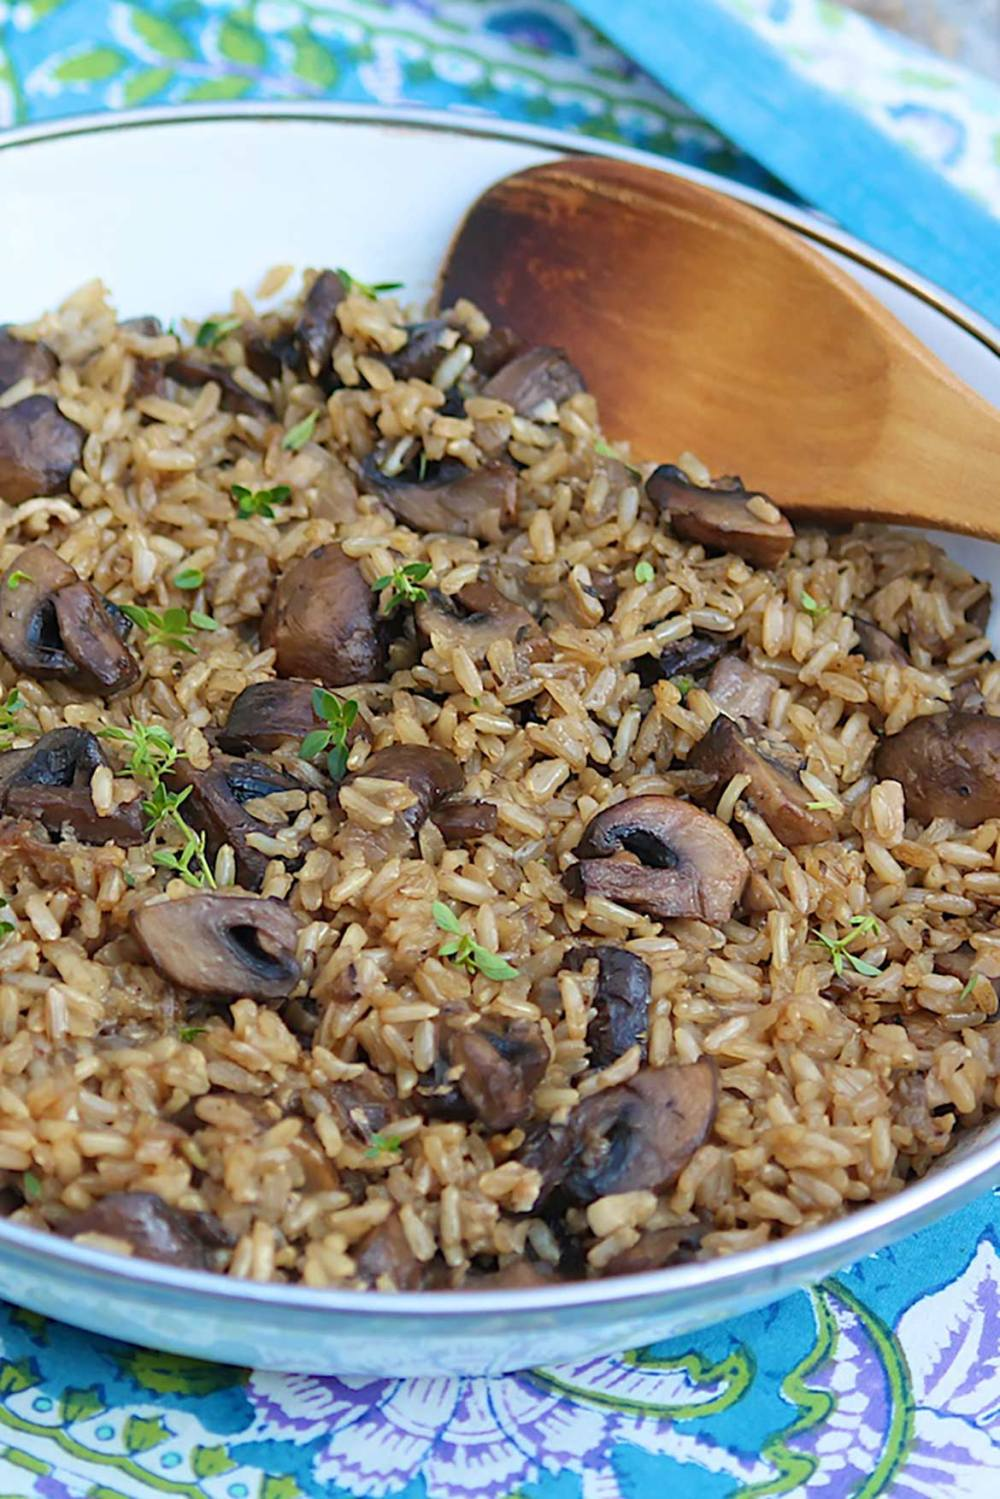 Easy oven technique virtually guarantees perfectly cooked, flavorful rice every time!